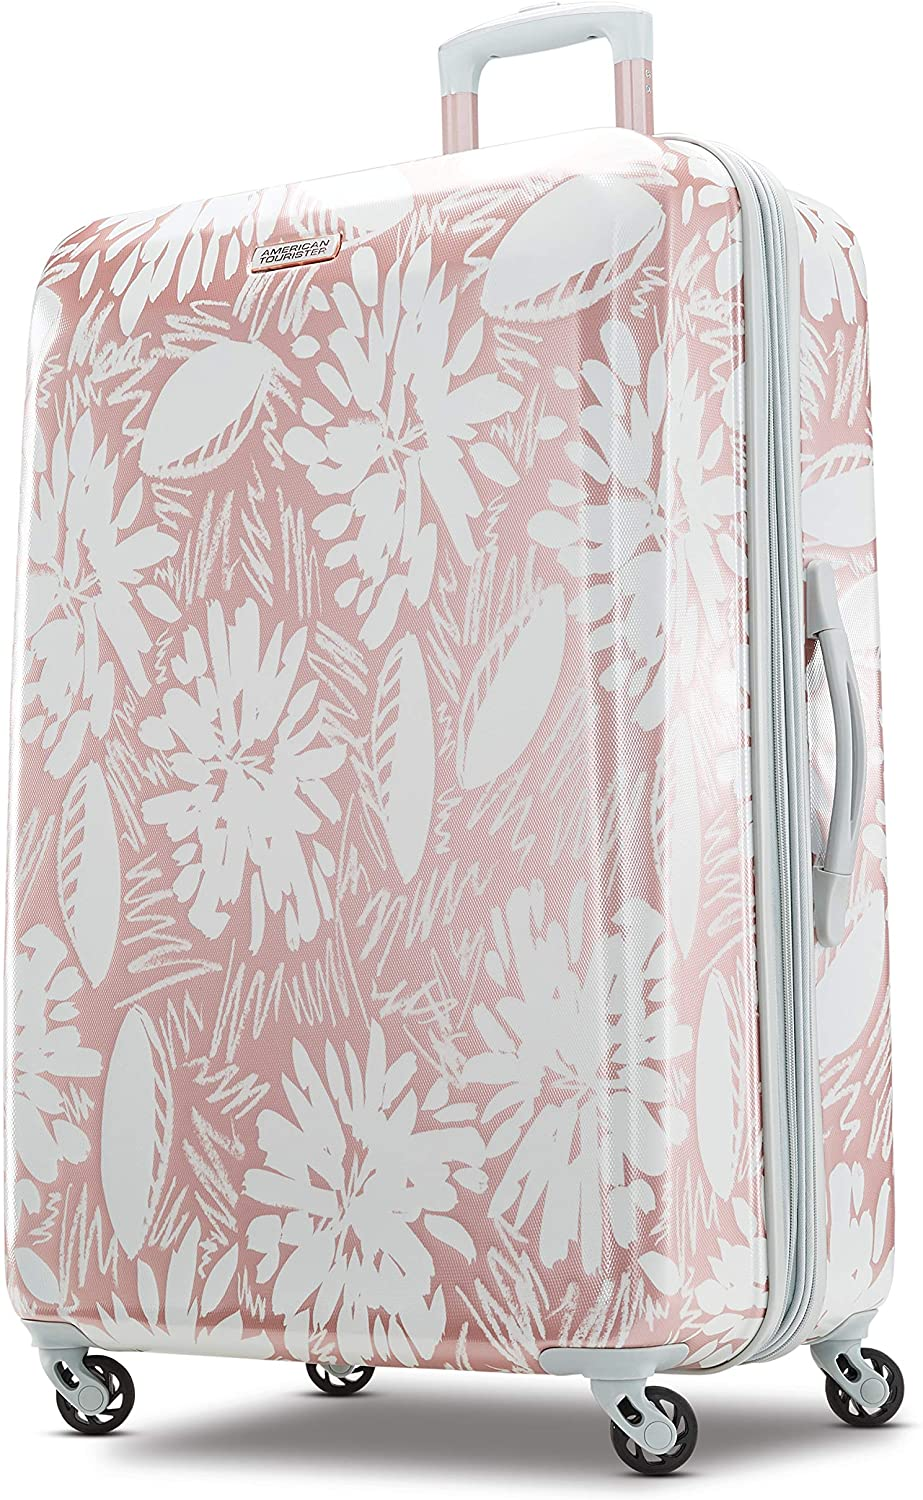 American Tourister rose gold suitcase